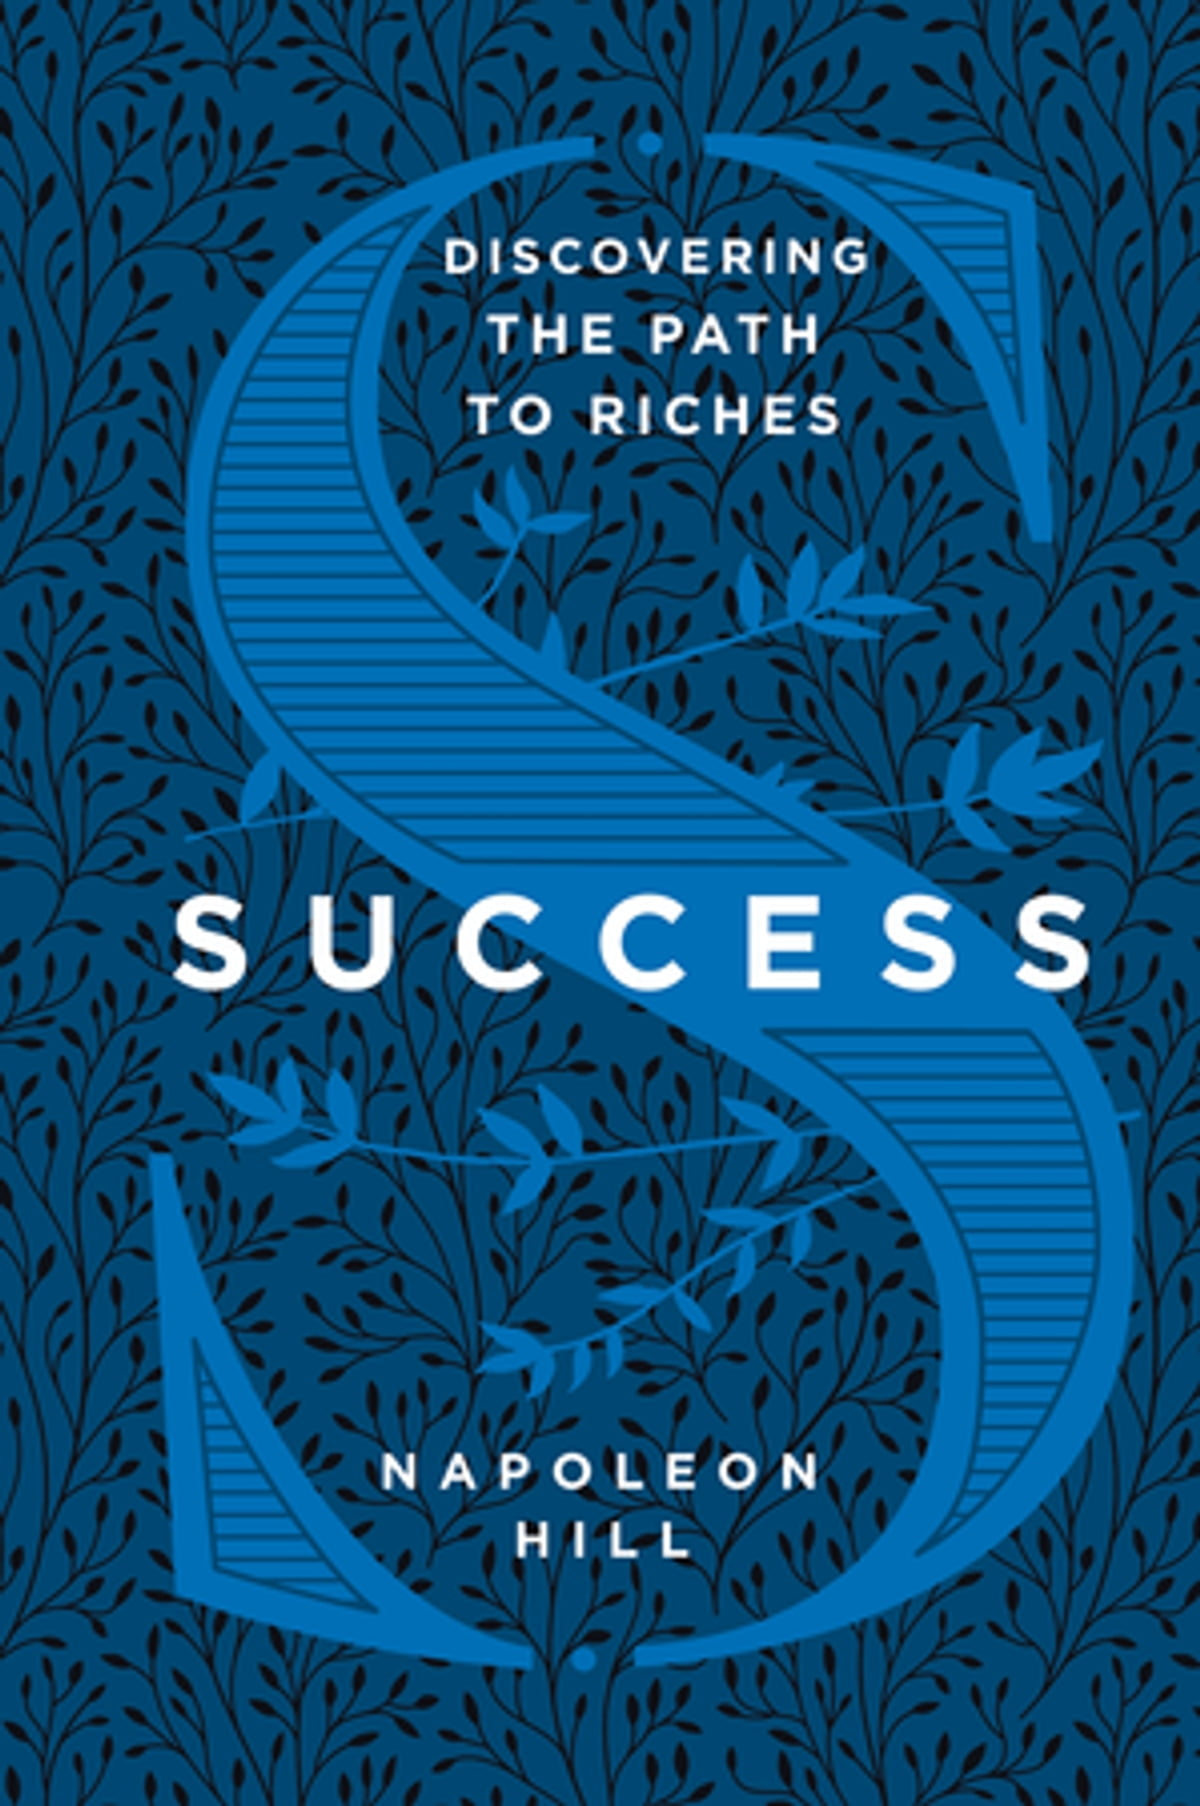 NAPOLEON HILL THE FIVE ESSENTIALS OF SUCCESS